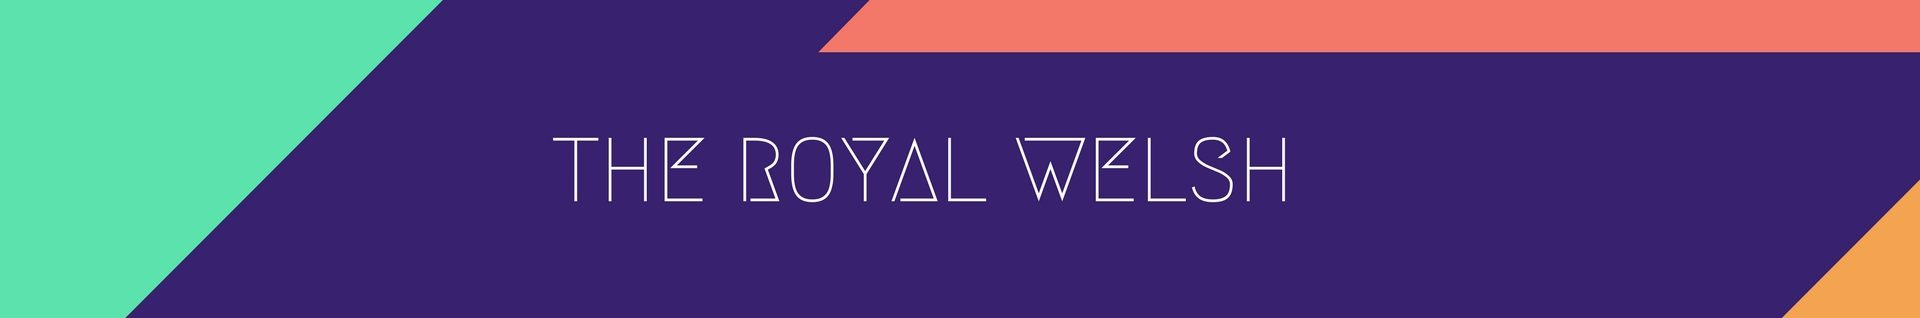 Royal Welsh Casino Blog – Guide to the Top Online Casino Games